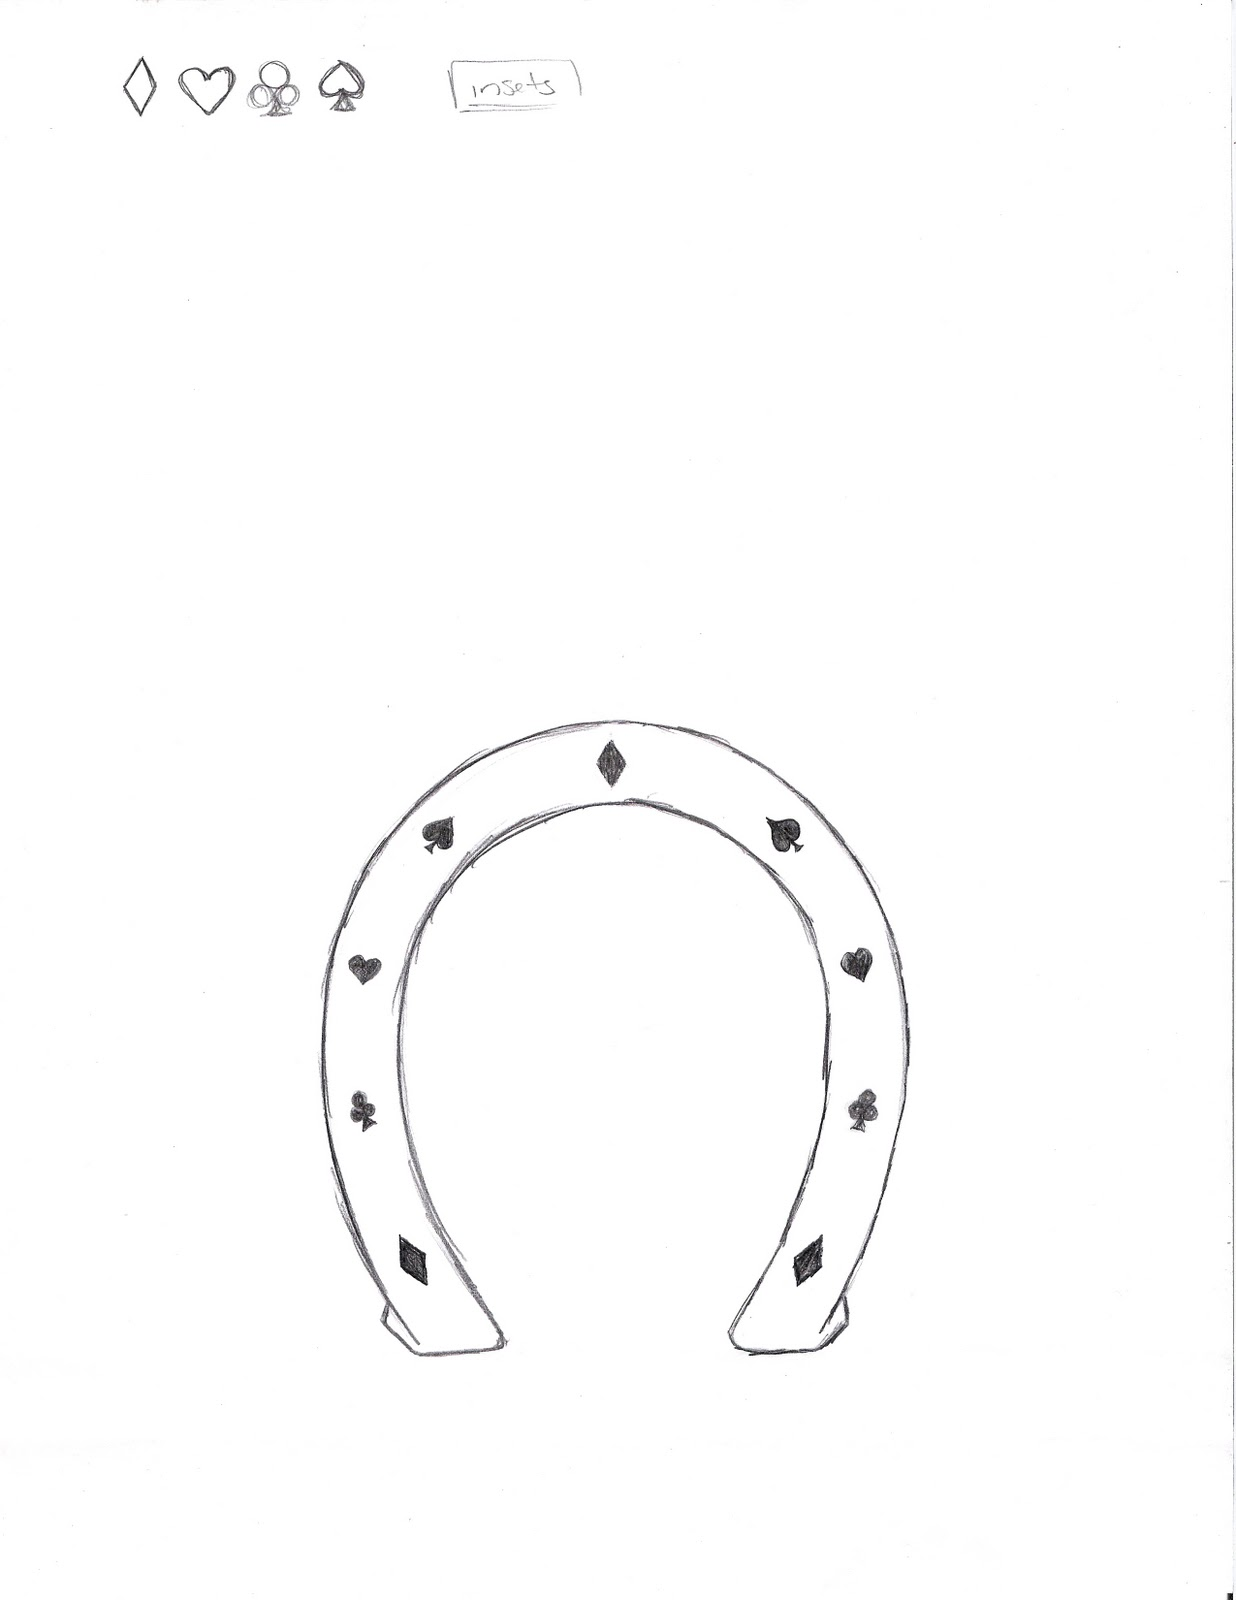 Drawn horseshoe hand Ad Collegio on ready for